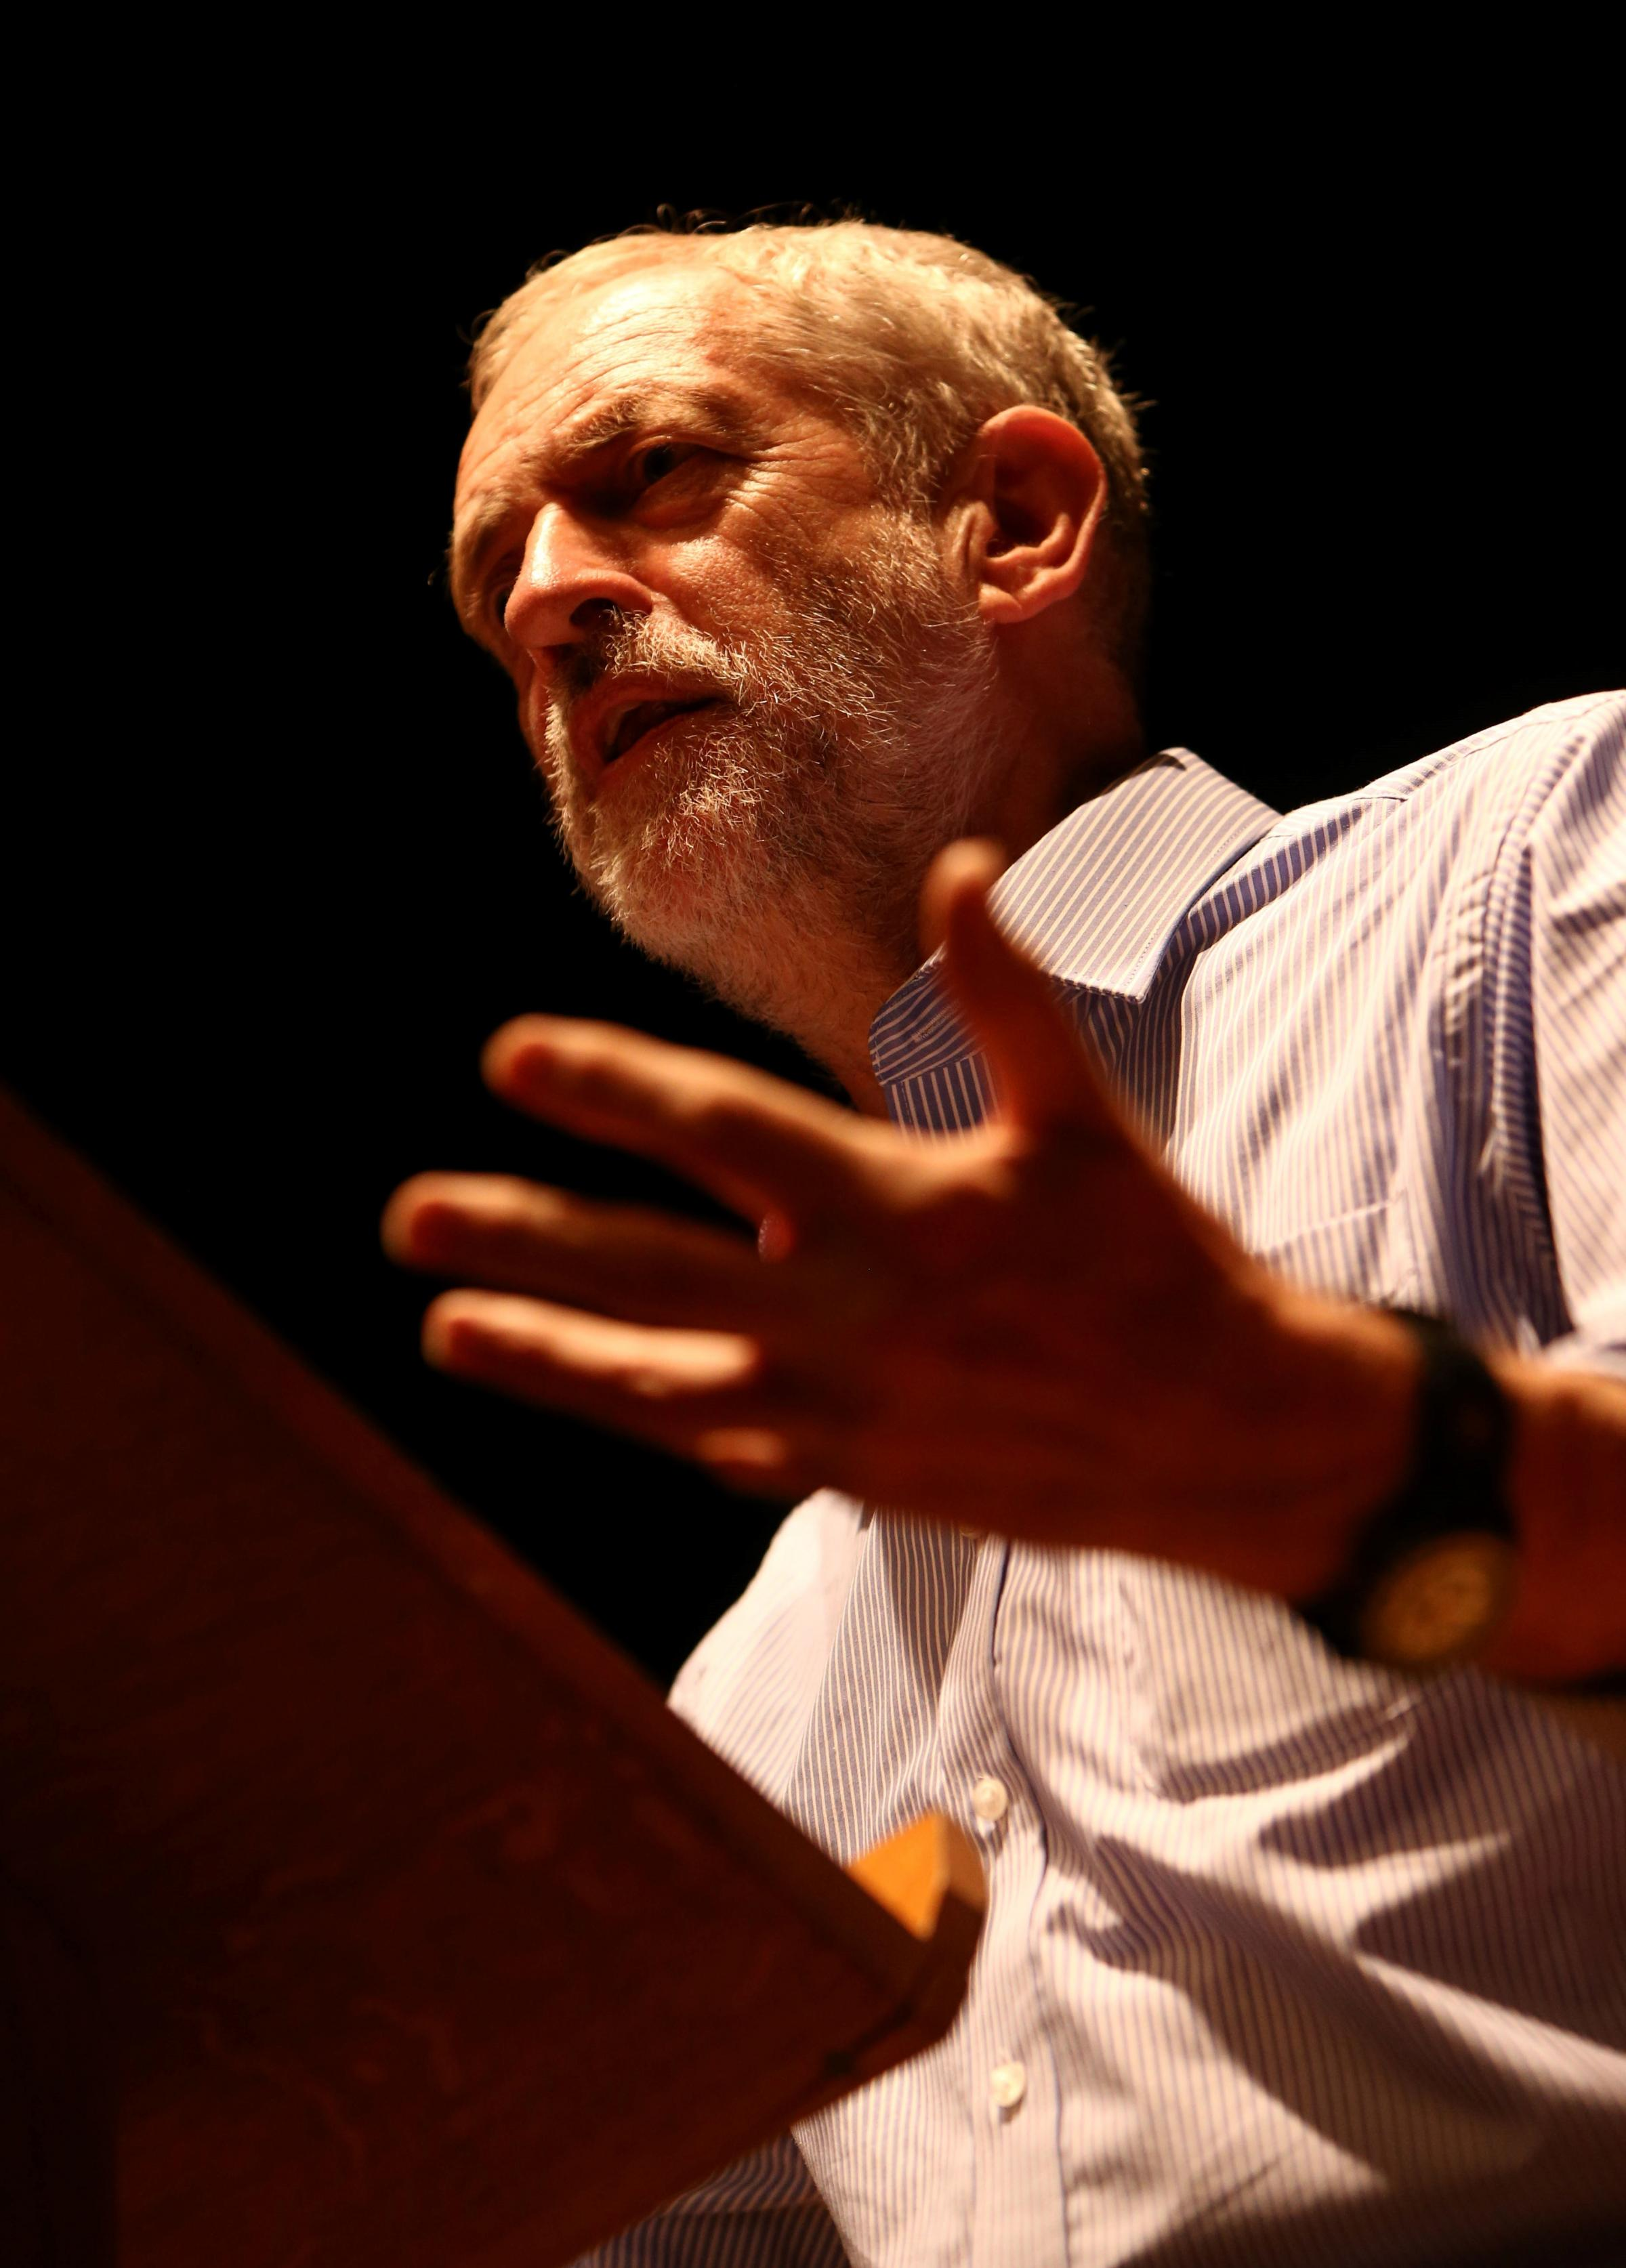 RALLY: Jeremy Corbyn on the stage of Middlesbrough Town Hall for a Labour party leadership rally. Picture: TOM BANKS.